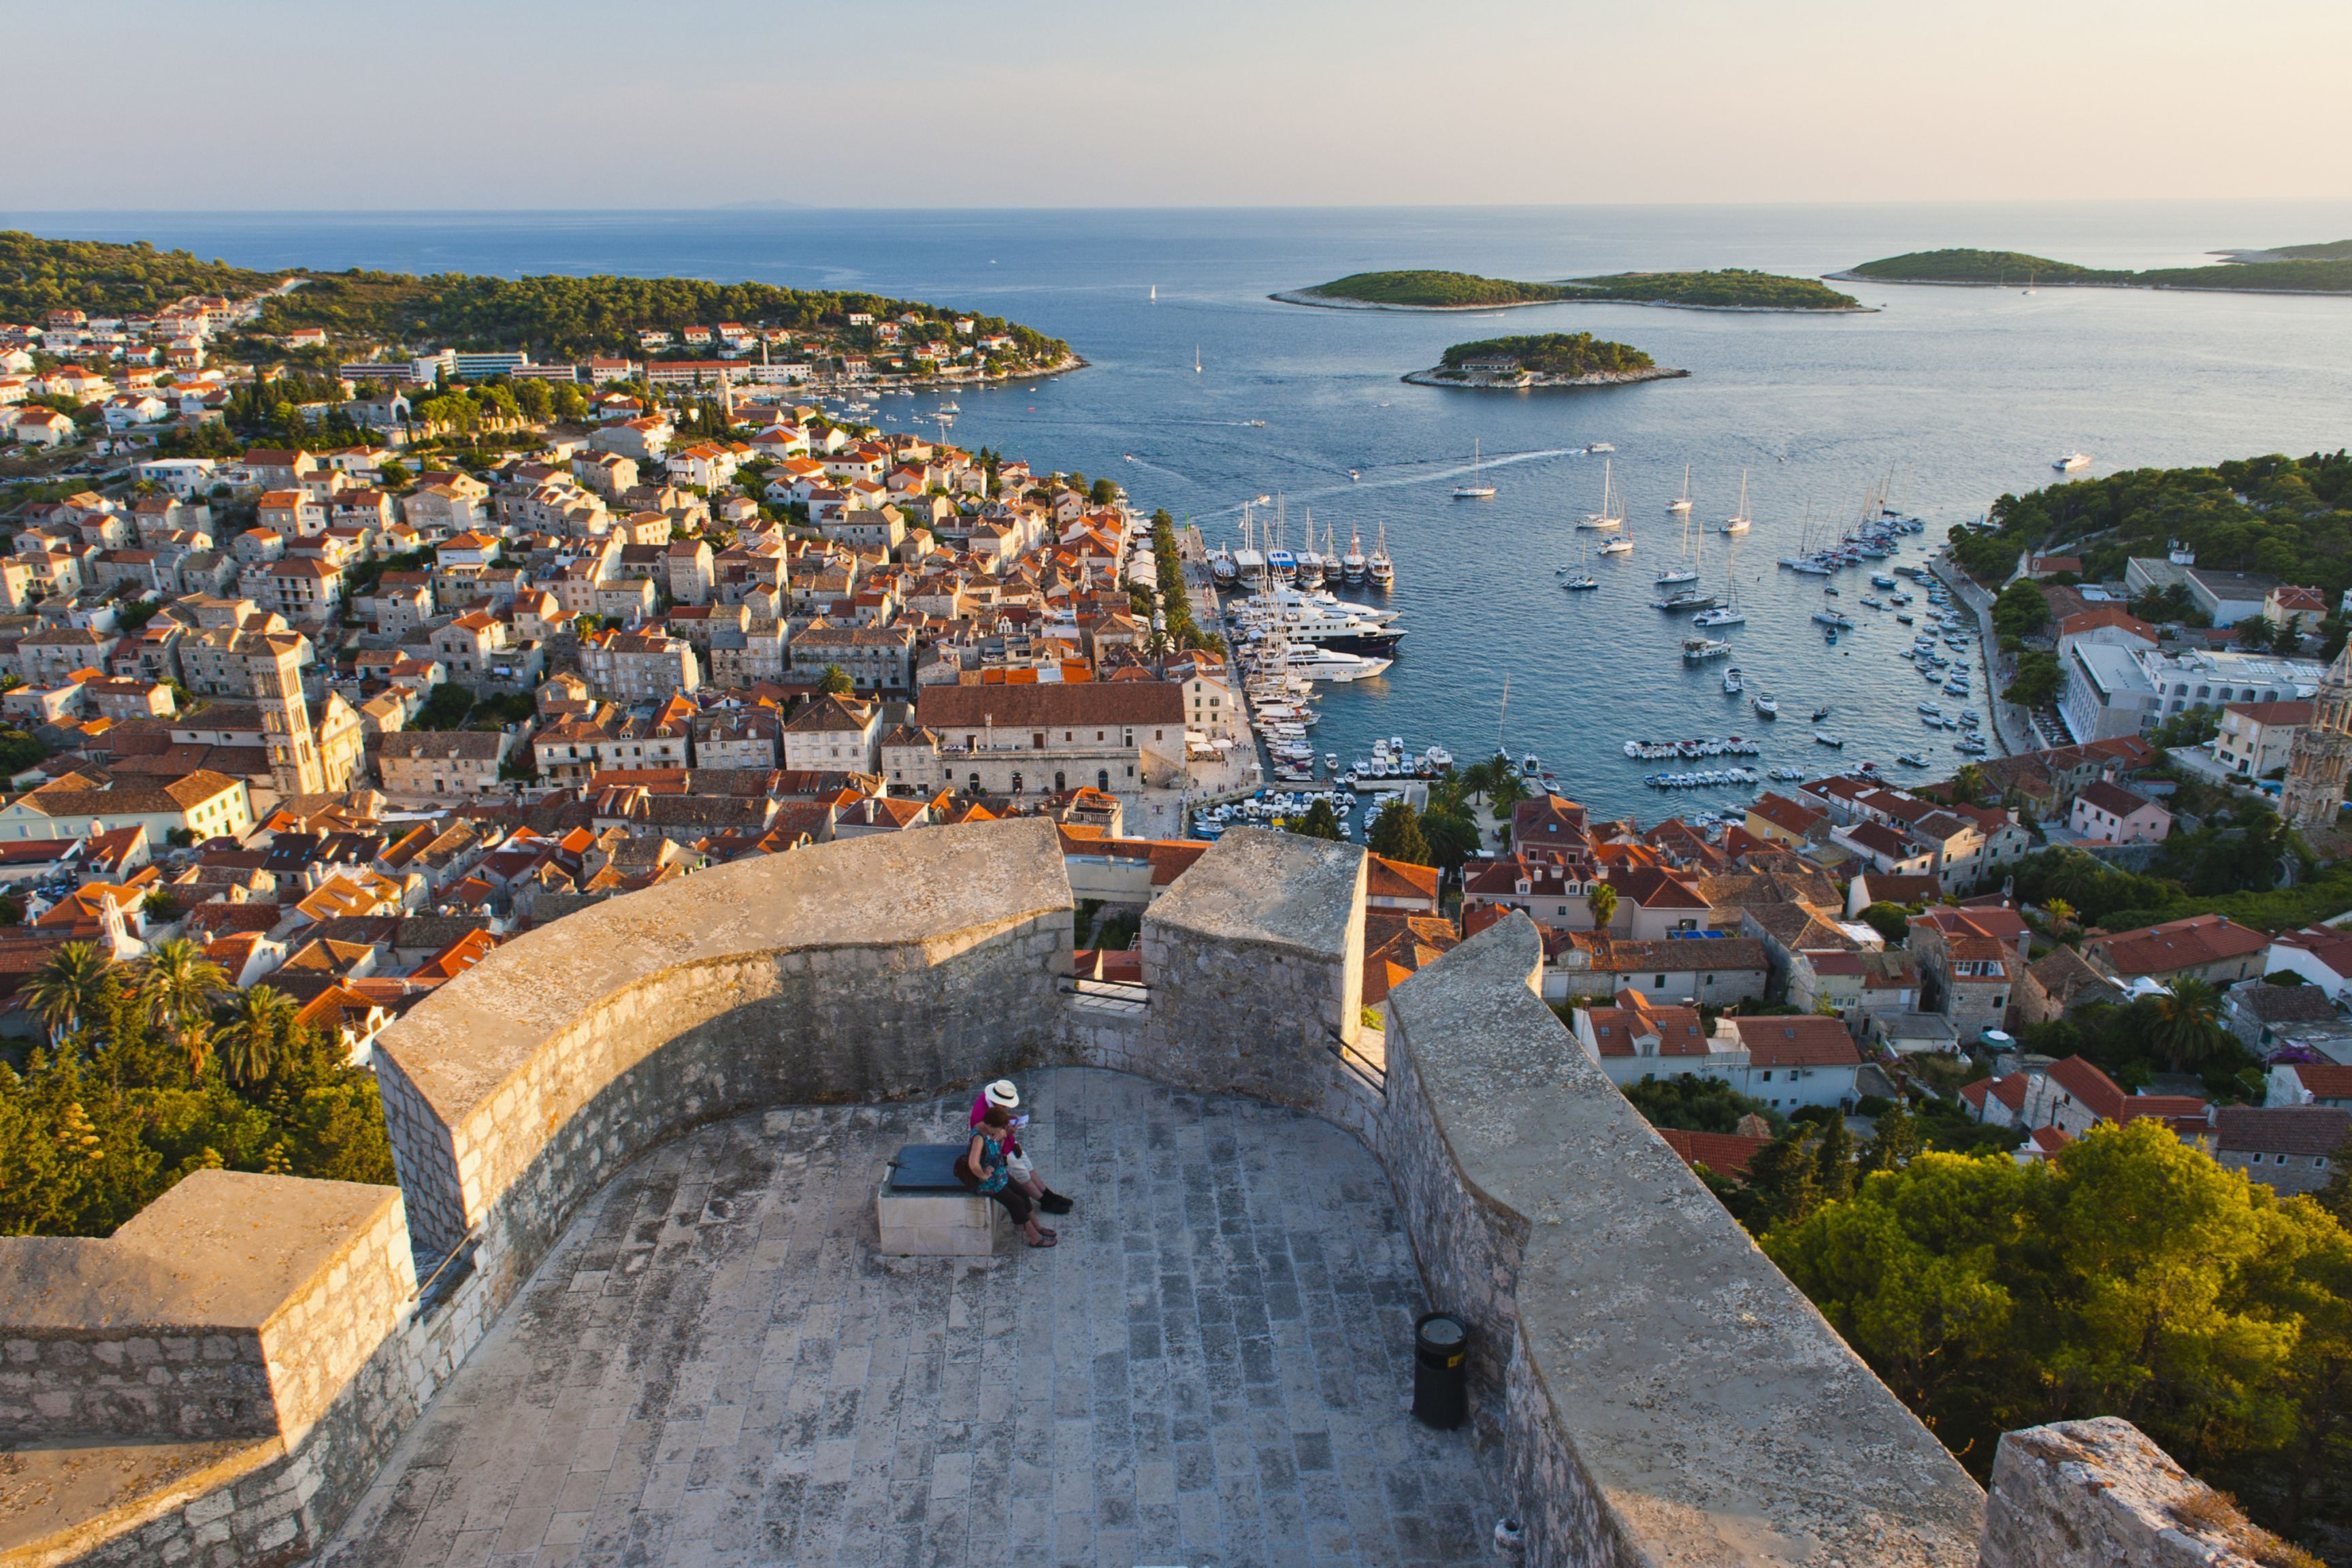 Fortica Hvar Town Croatia Attractions Hvar Island Croatia Travel Croatia Holiday